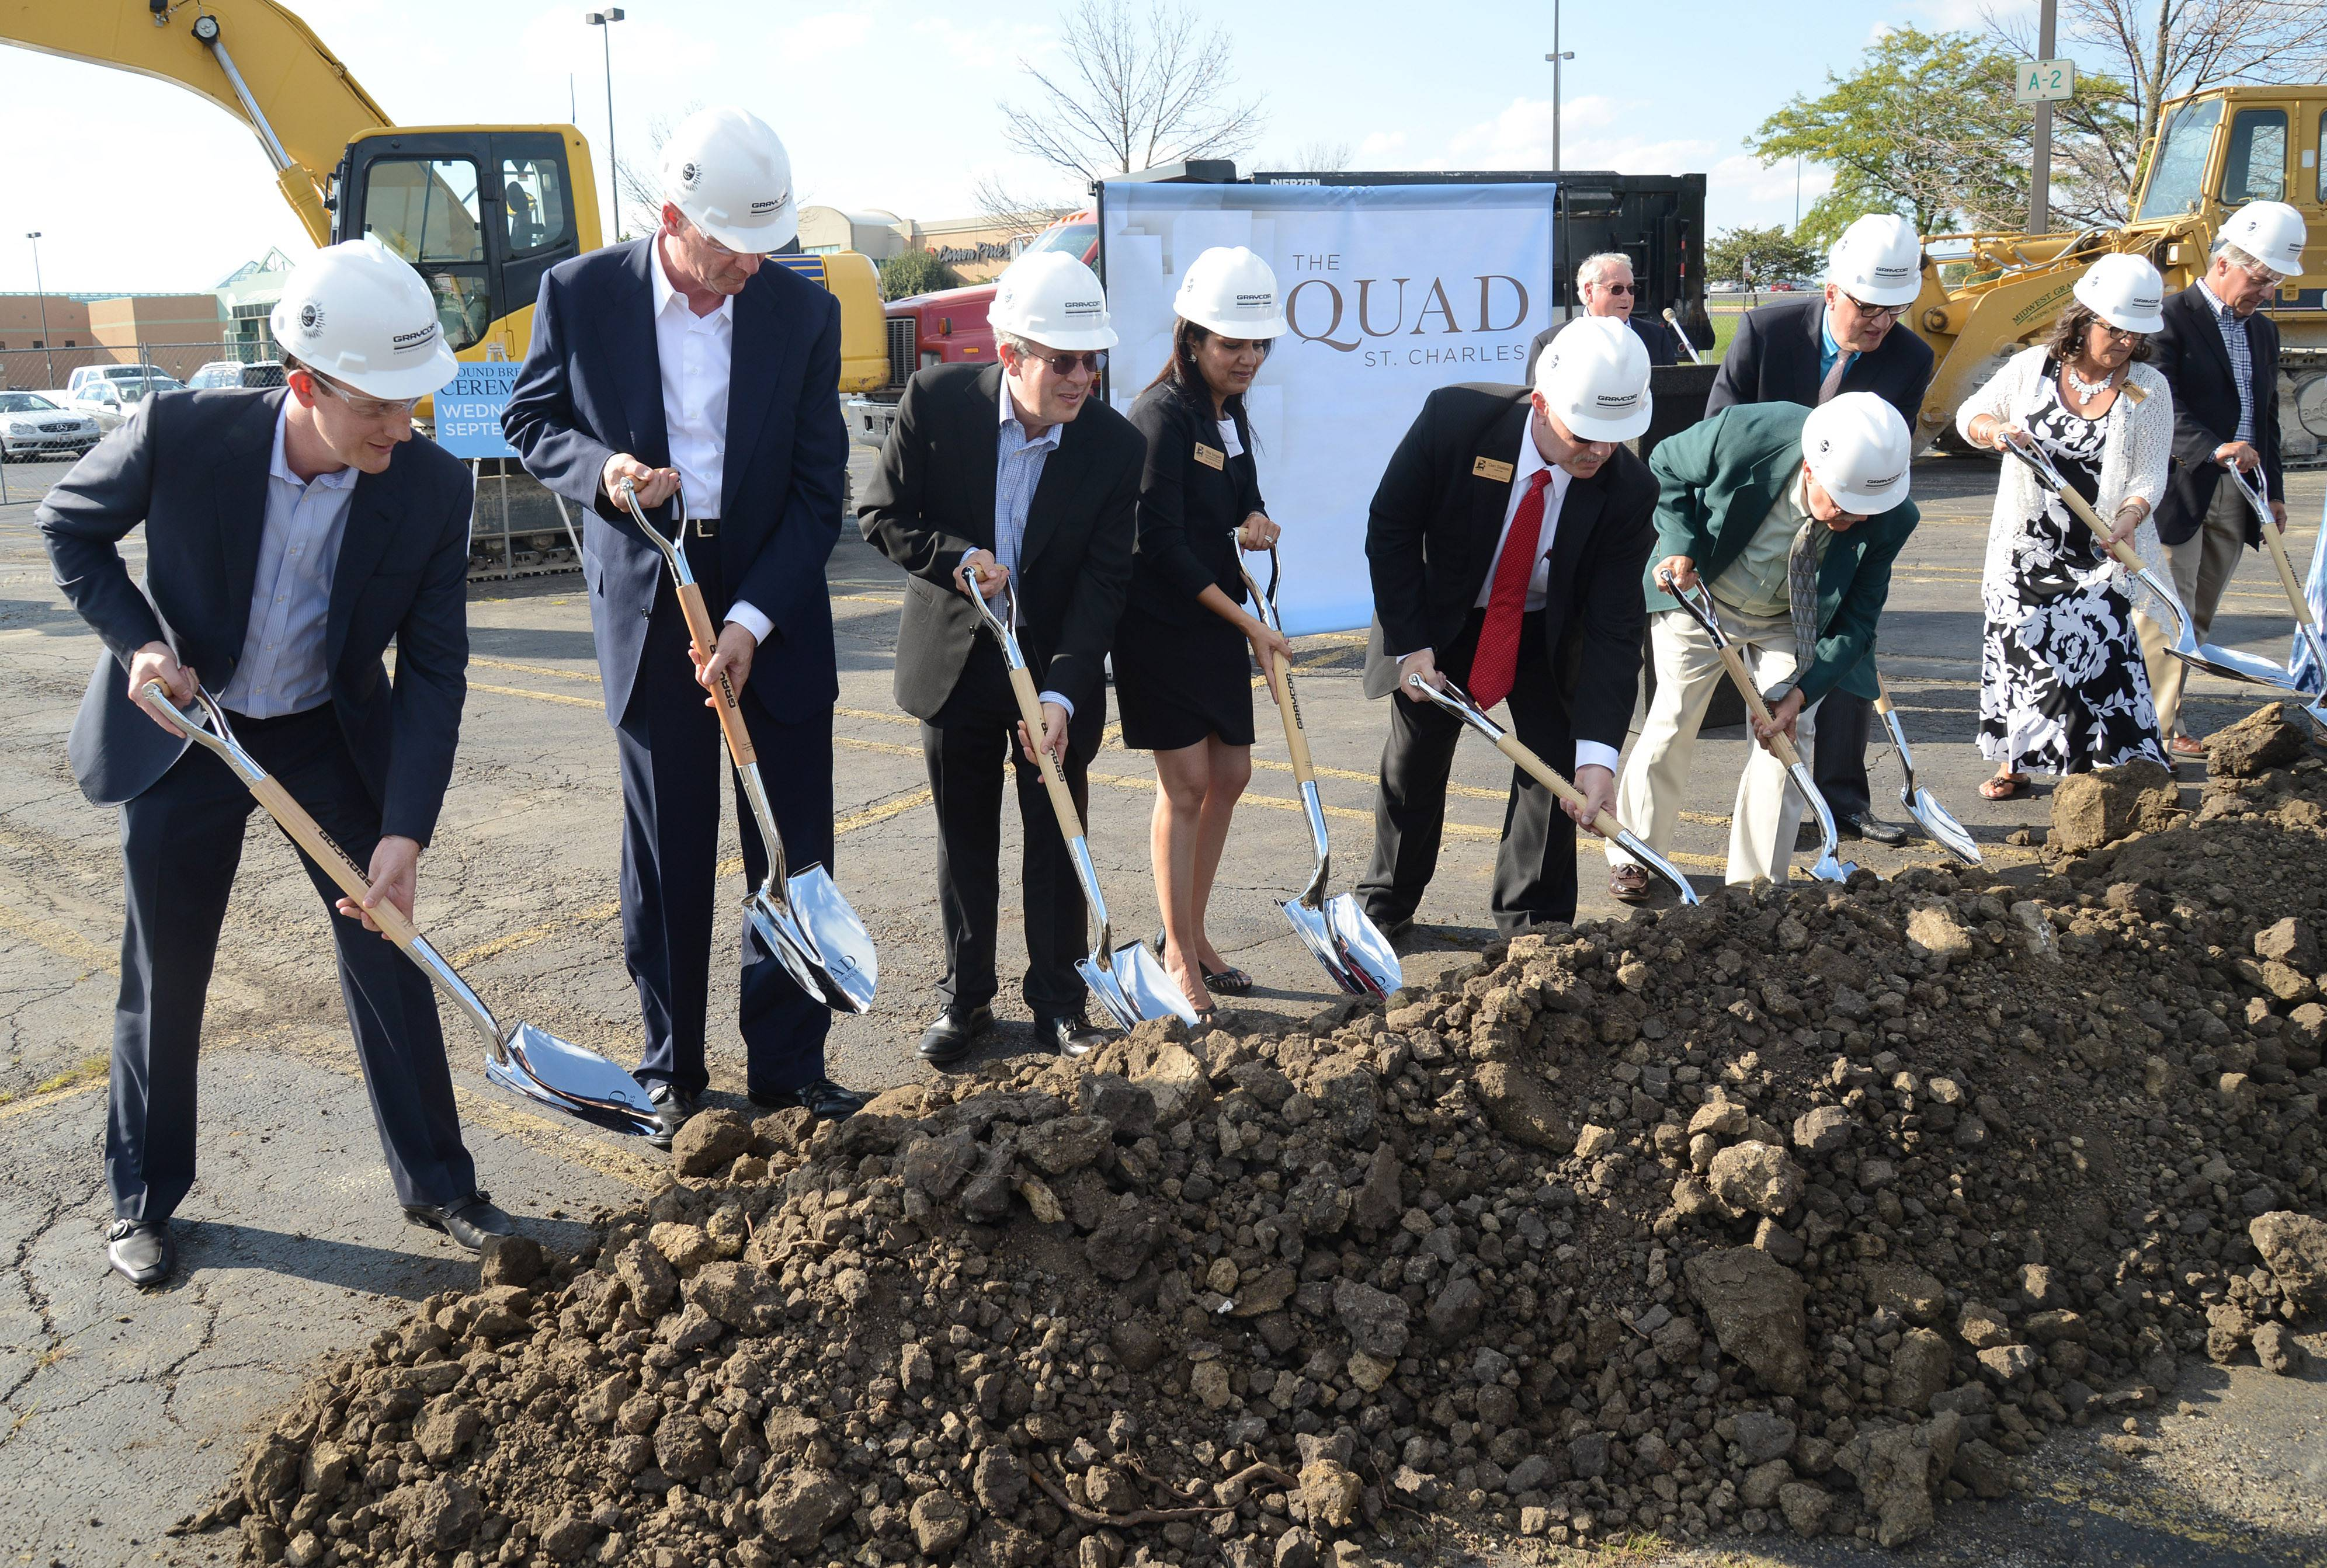 City aldermen and St. Charles Mayor Ray Rogina, third from right, throw ceremonial dirt at the groundbreaking ceremony for The Quad in St. Charles on Wednesday.